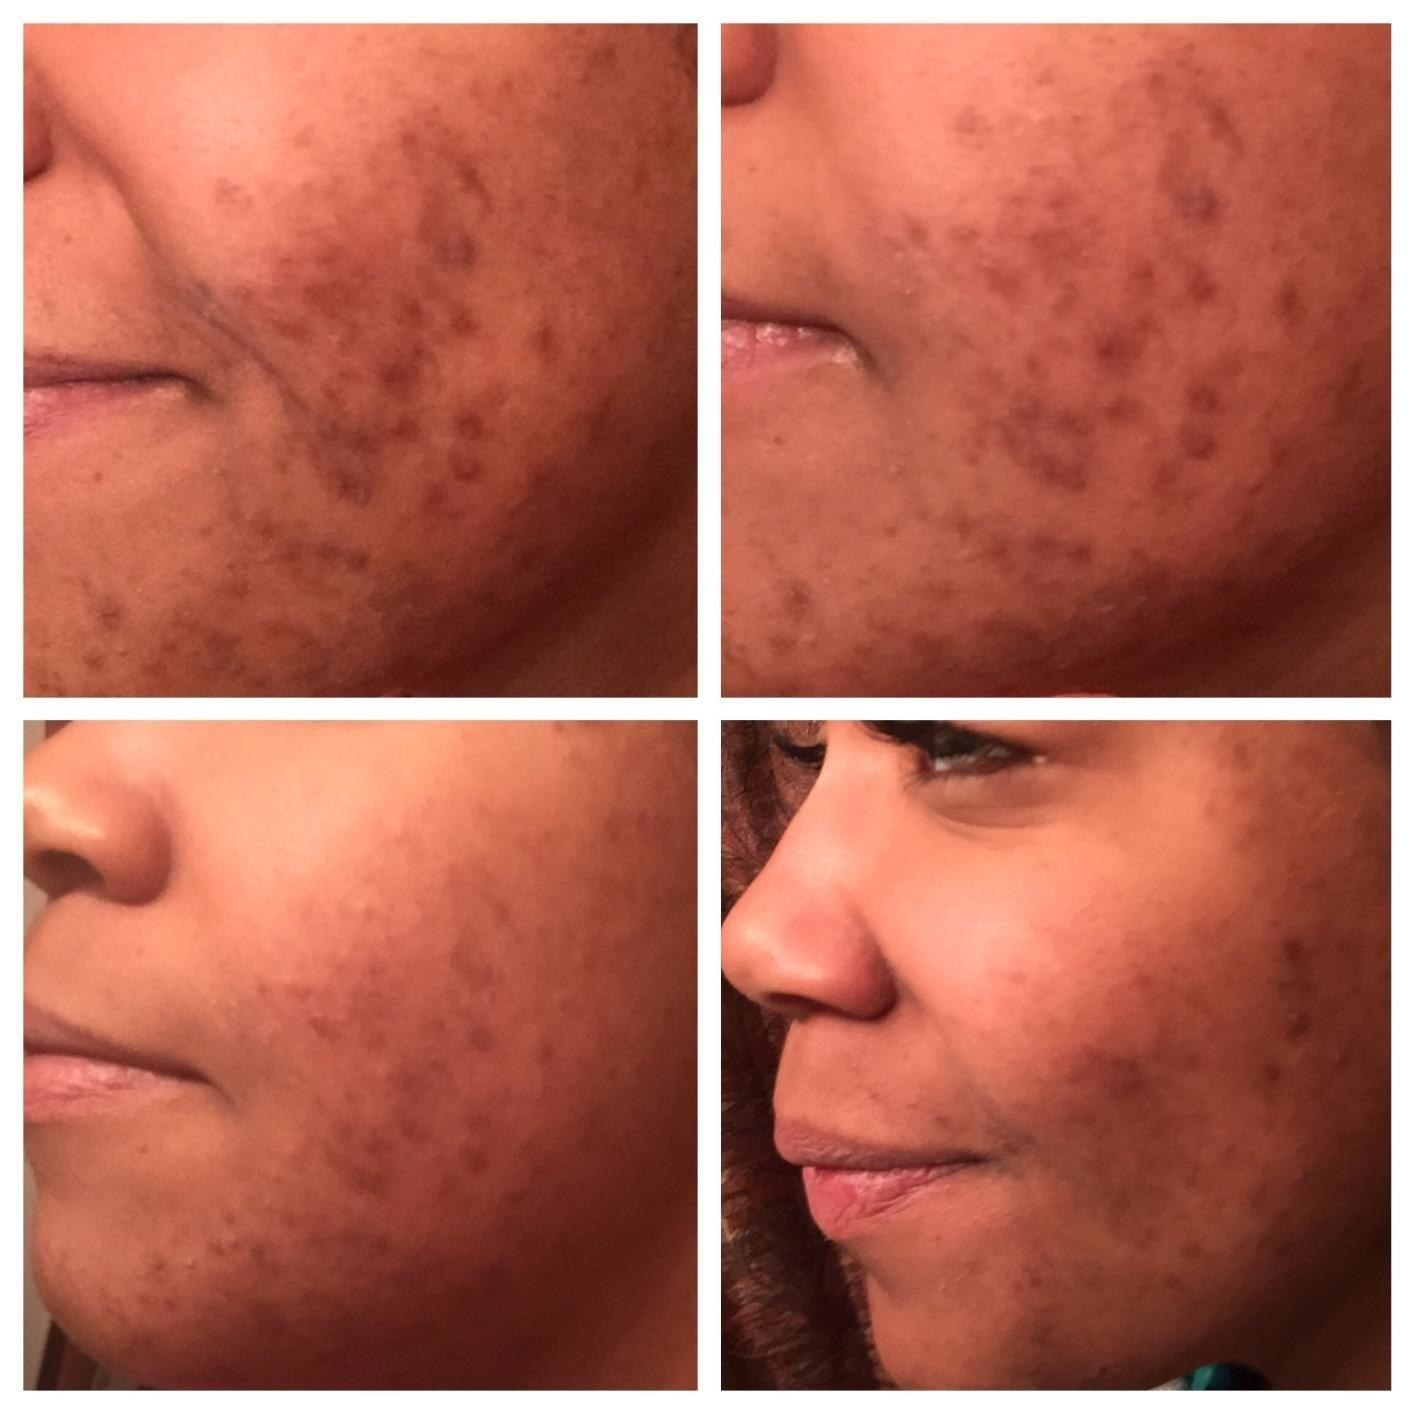 A reviewer showing progression from several dark marks on their face to just a few dark marks